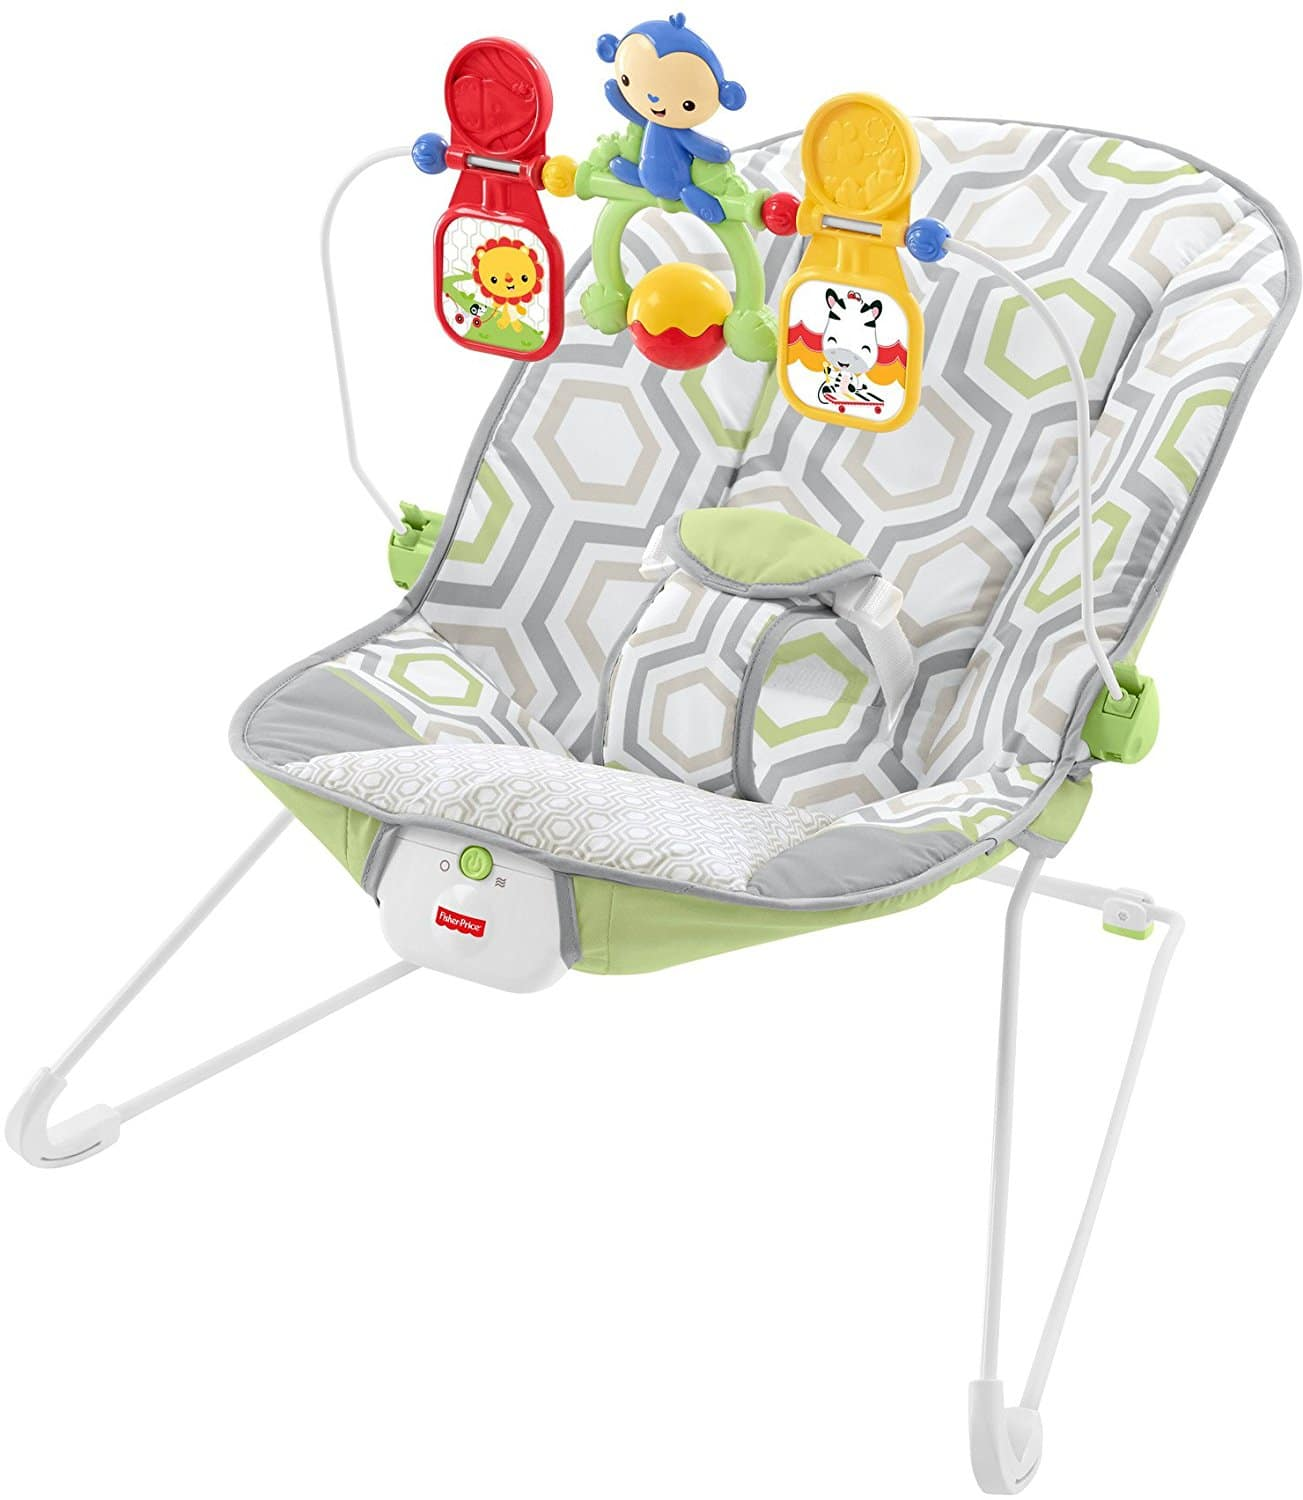 Fisher-Price Baby's Bouncer (Geo Meadow) $18.79 @ Amazon (Prime Members Only) or Target